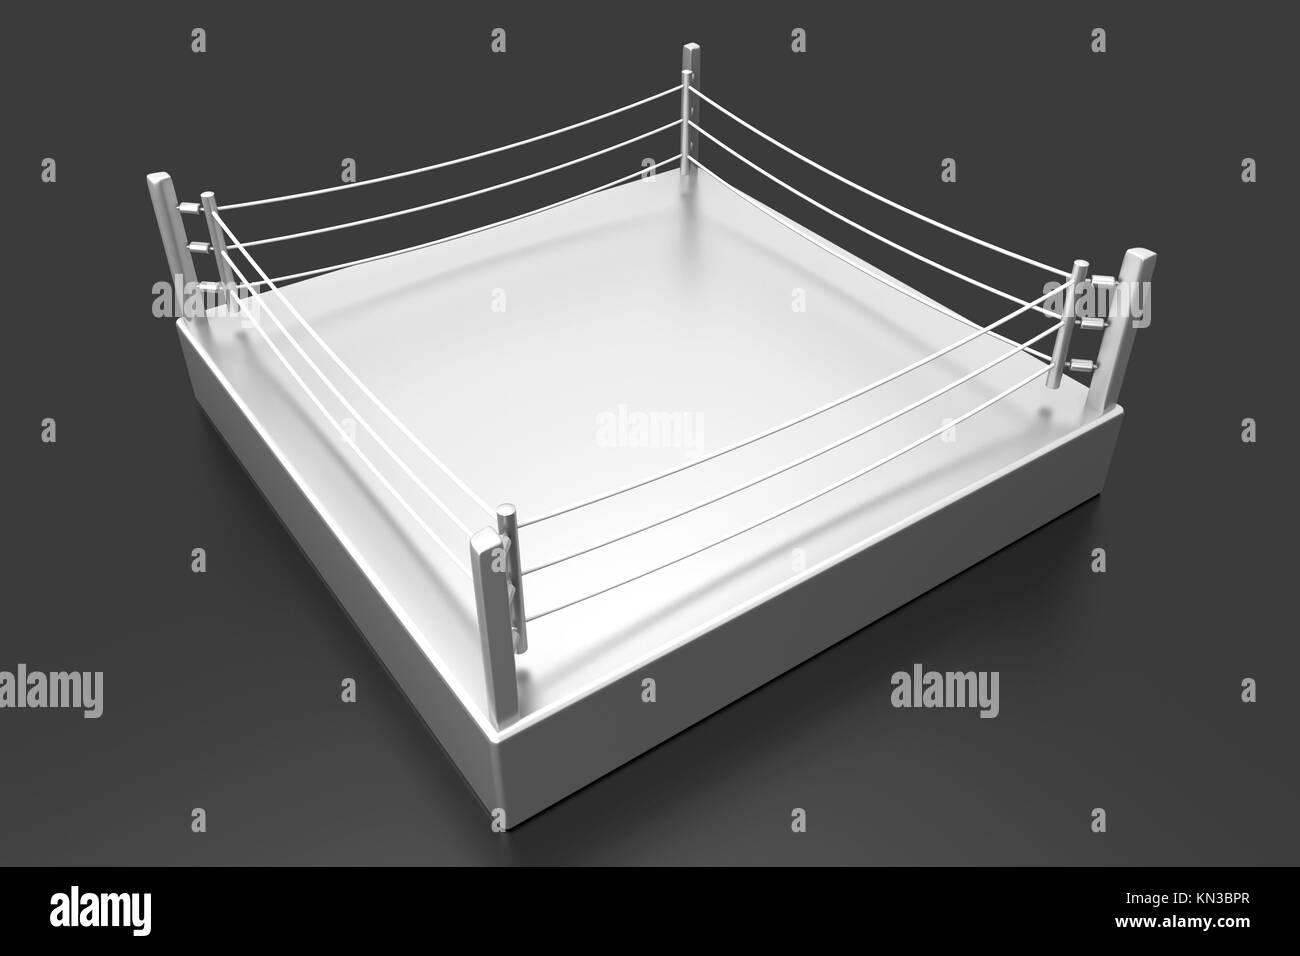 A Boxing ring. 3d illustration. - Stock Image